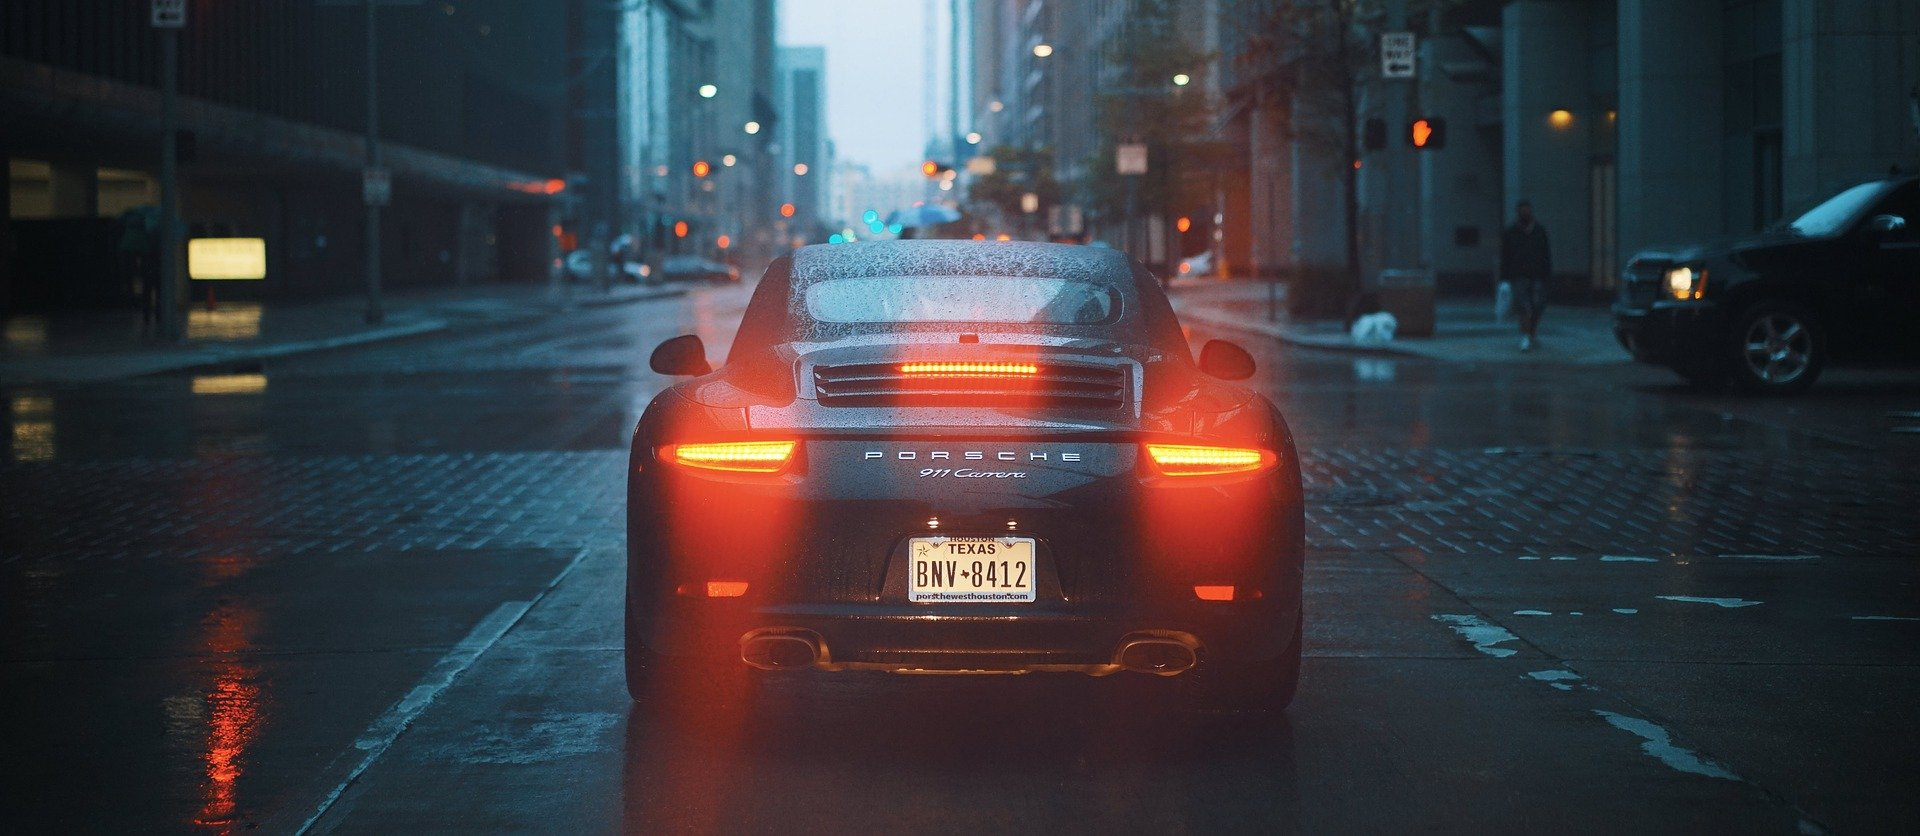 Back view of a porche driving through a city at night.